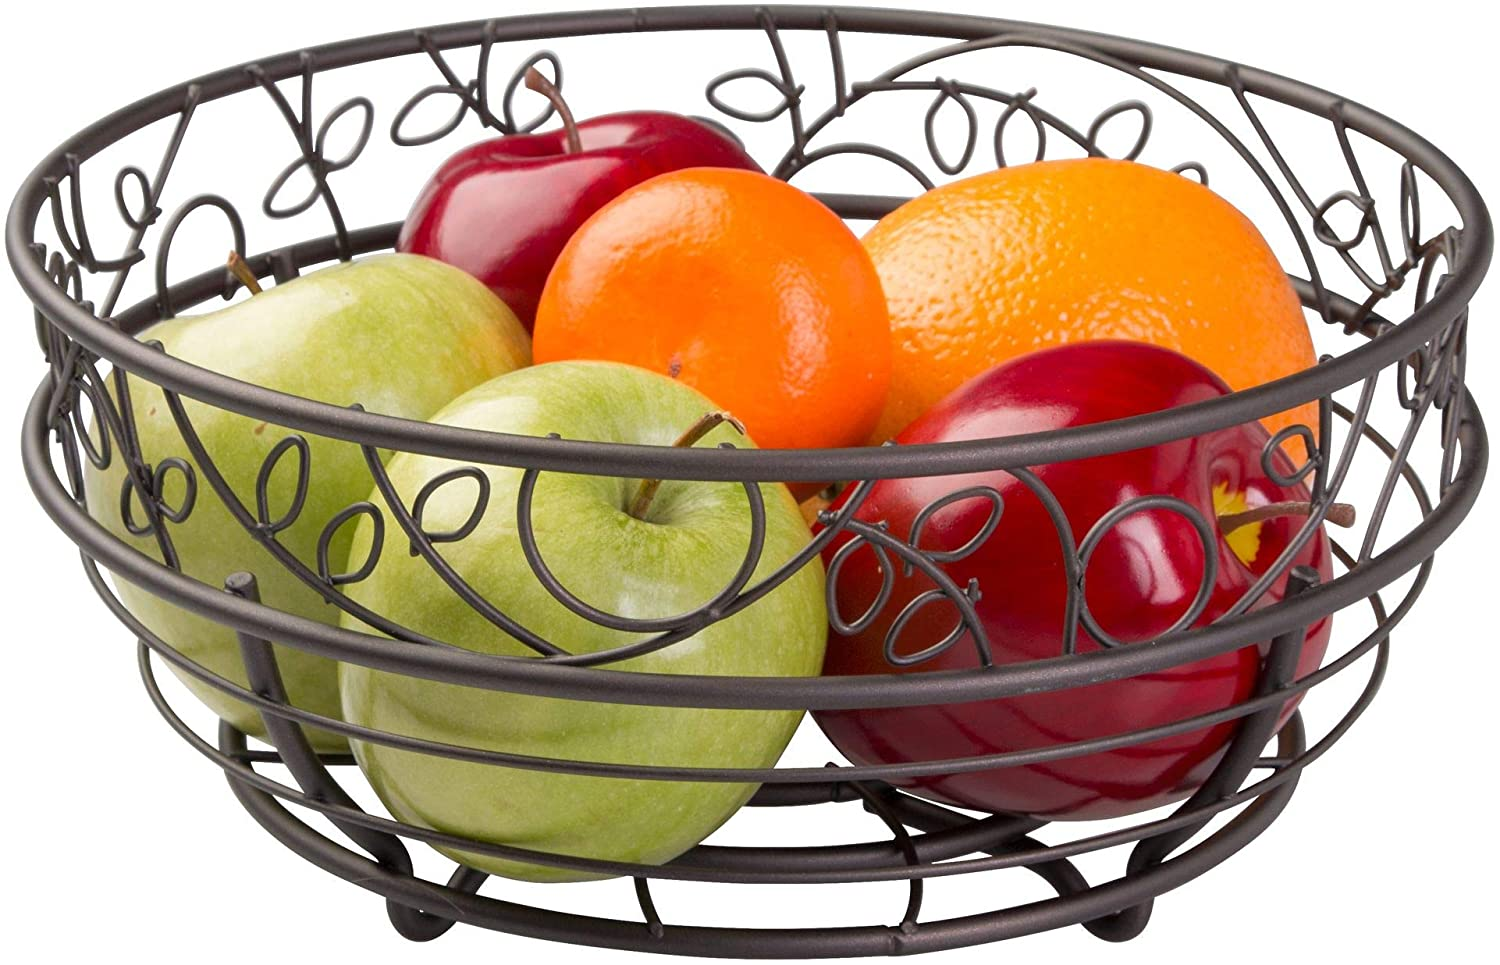 Idesign Twigz Wire Fruit Bowl Centerpiece For Kitchen And Dining Room Countertops Tables Buffets Refrigerators Bronze Home Kitchen